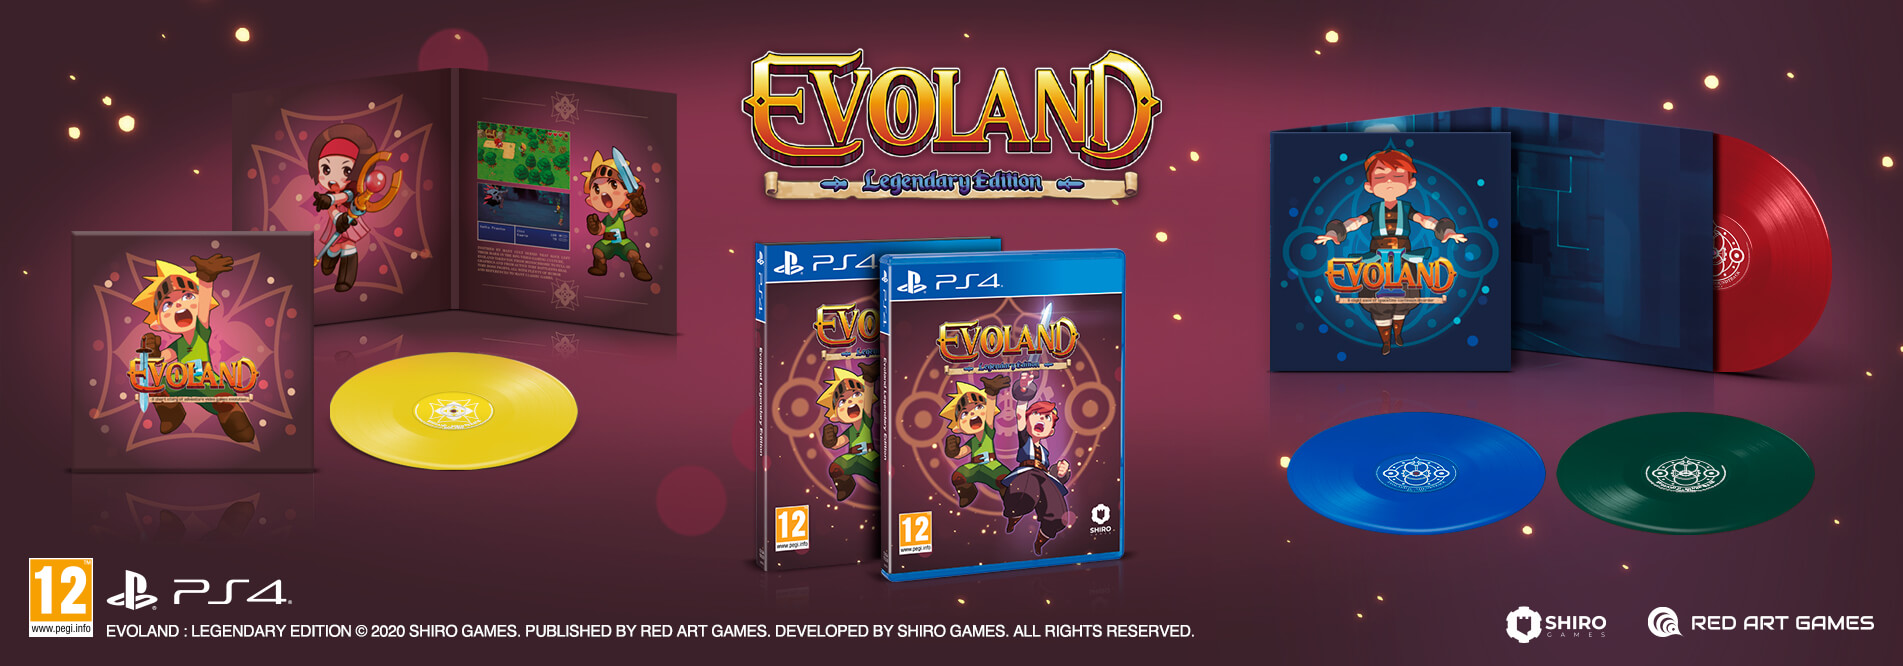 Evoland: Legendary Edition